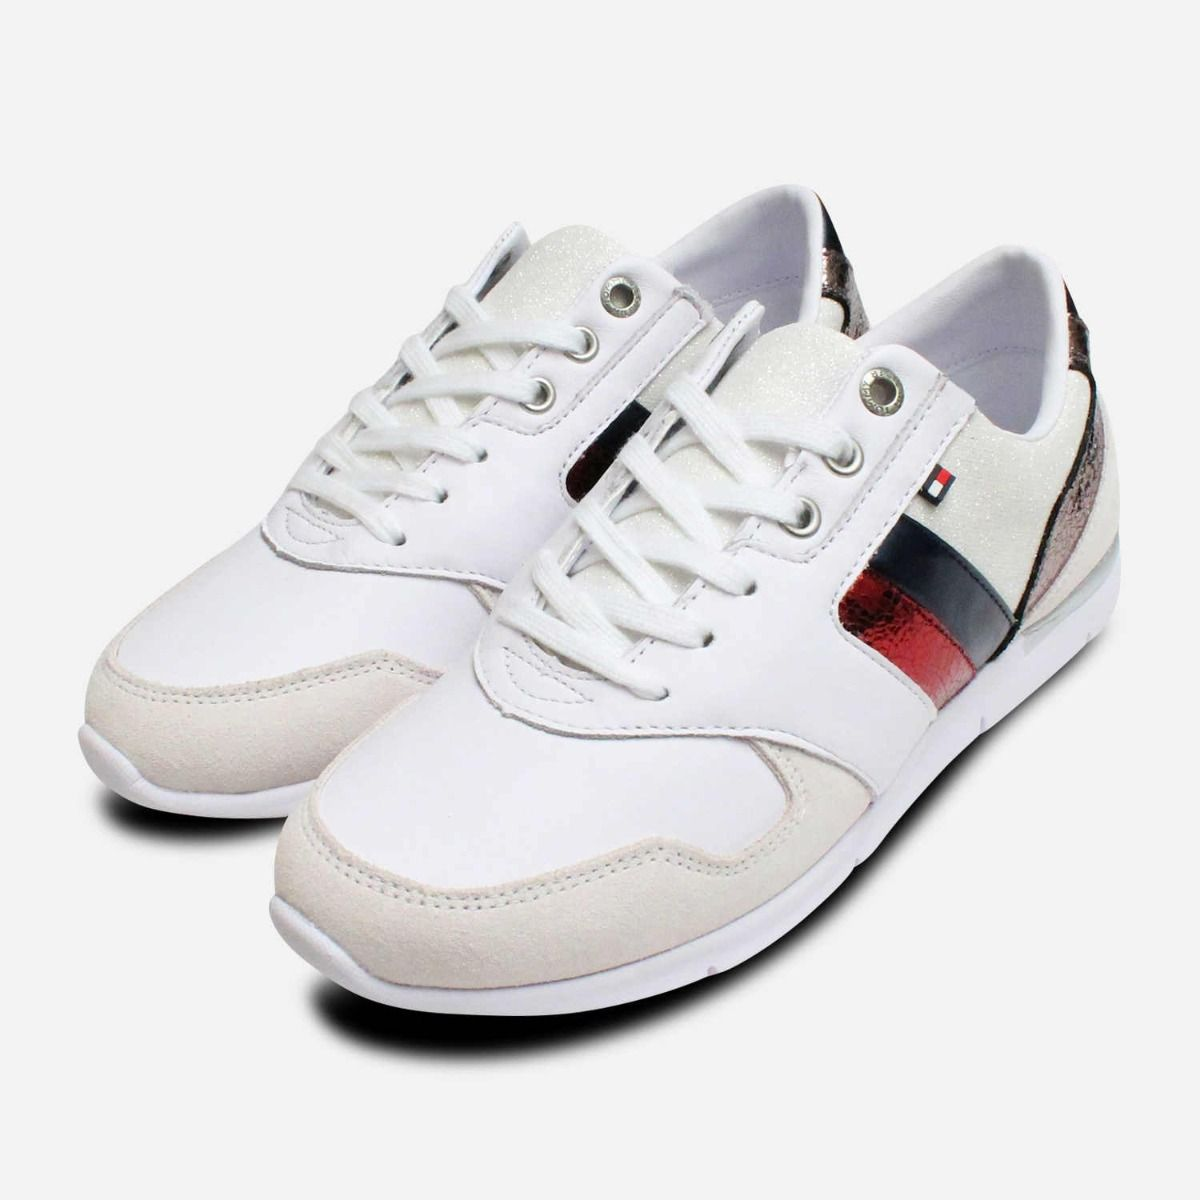 ed59b6ce9 White Leather Tommy Hilfiger Lightweight Ladies Trainers